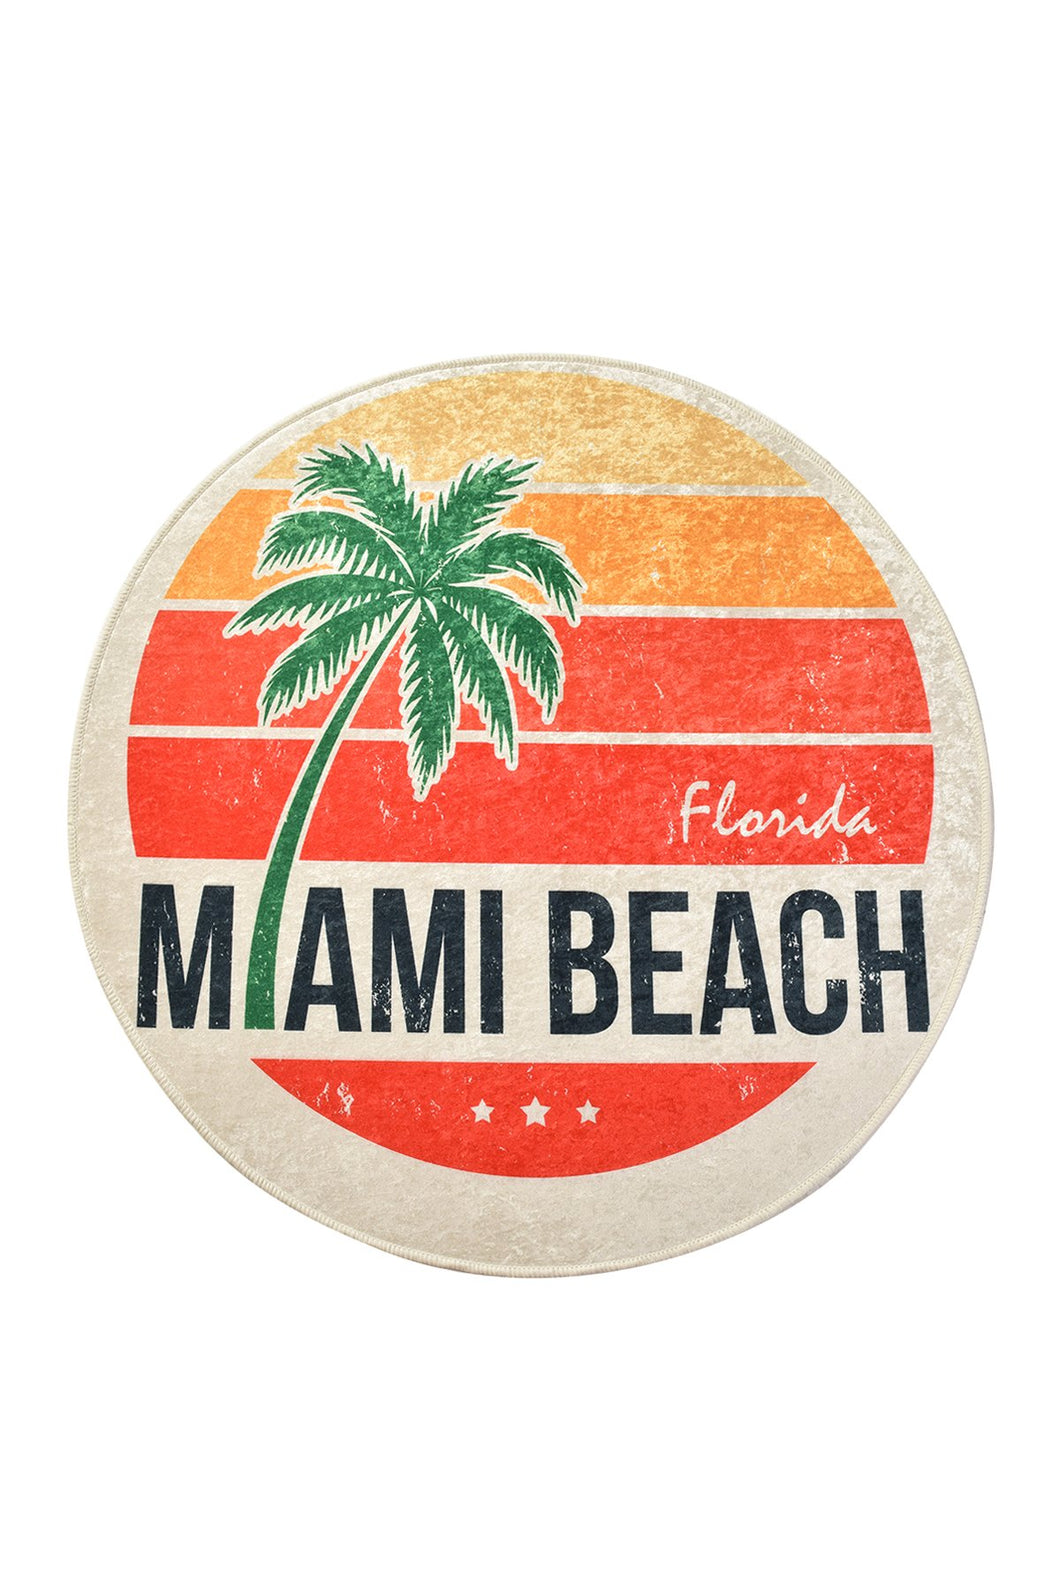 Antdecor Miami Beach Round Bath Rug Area Rug Round Rug 40